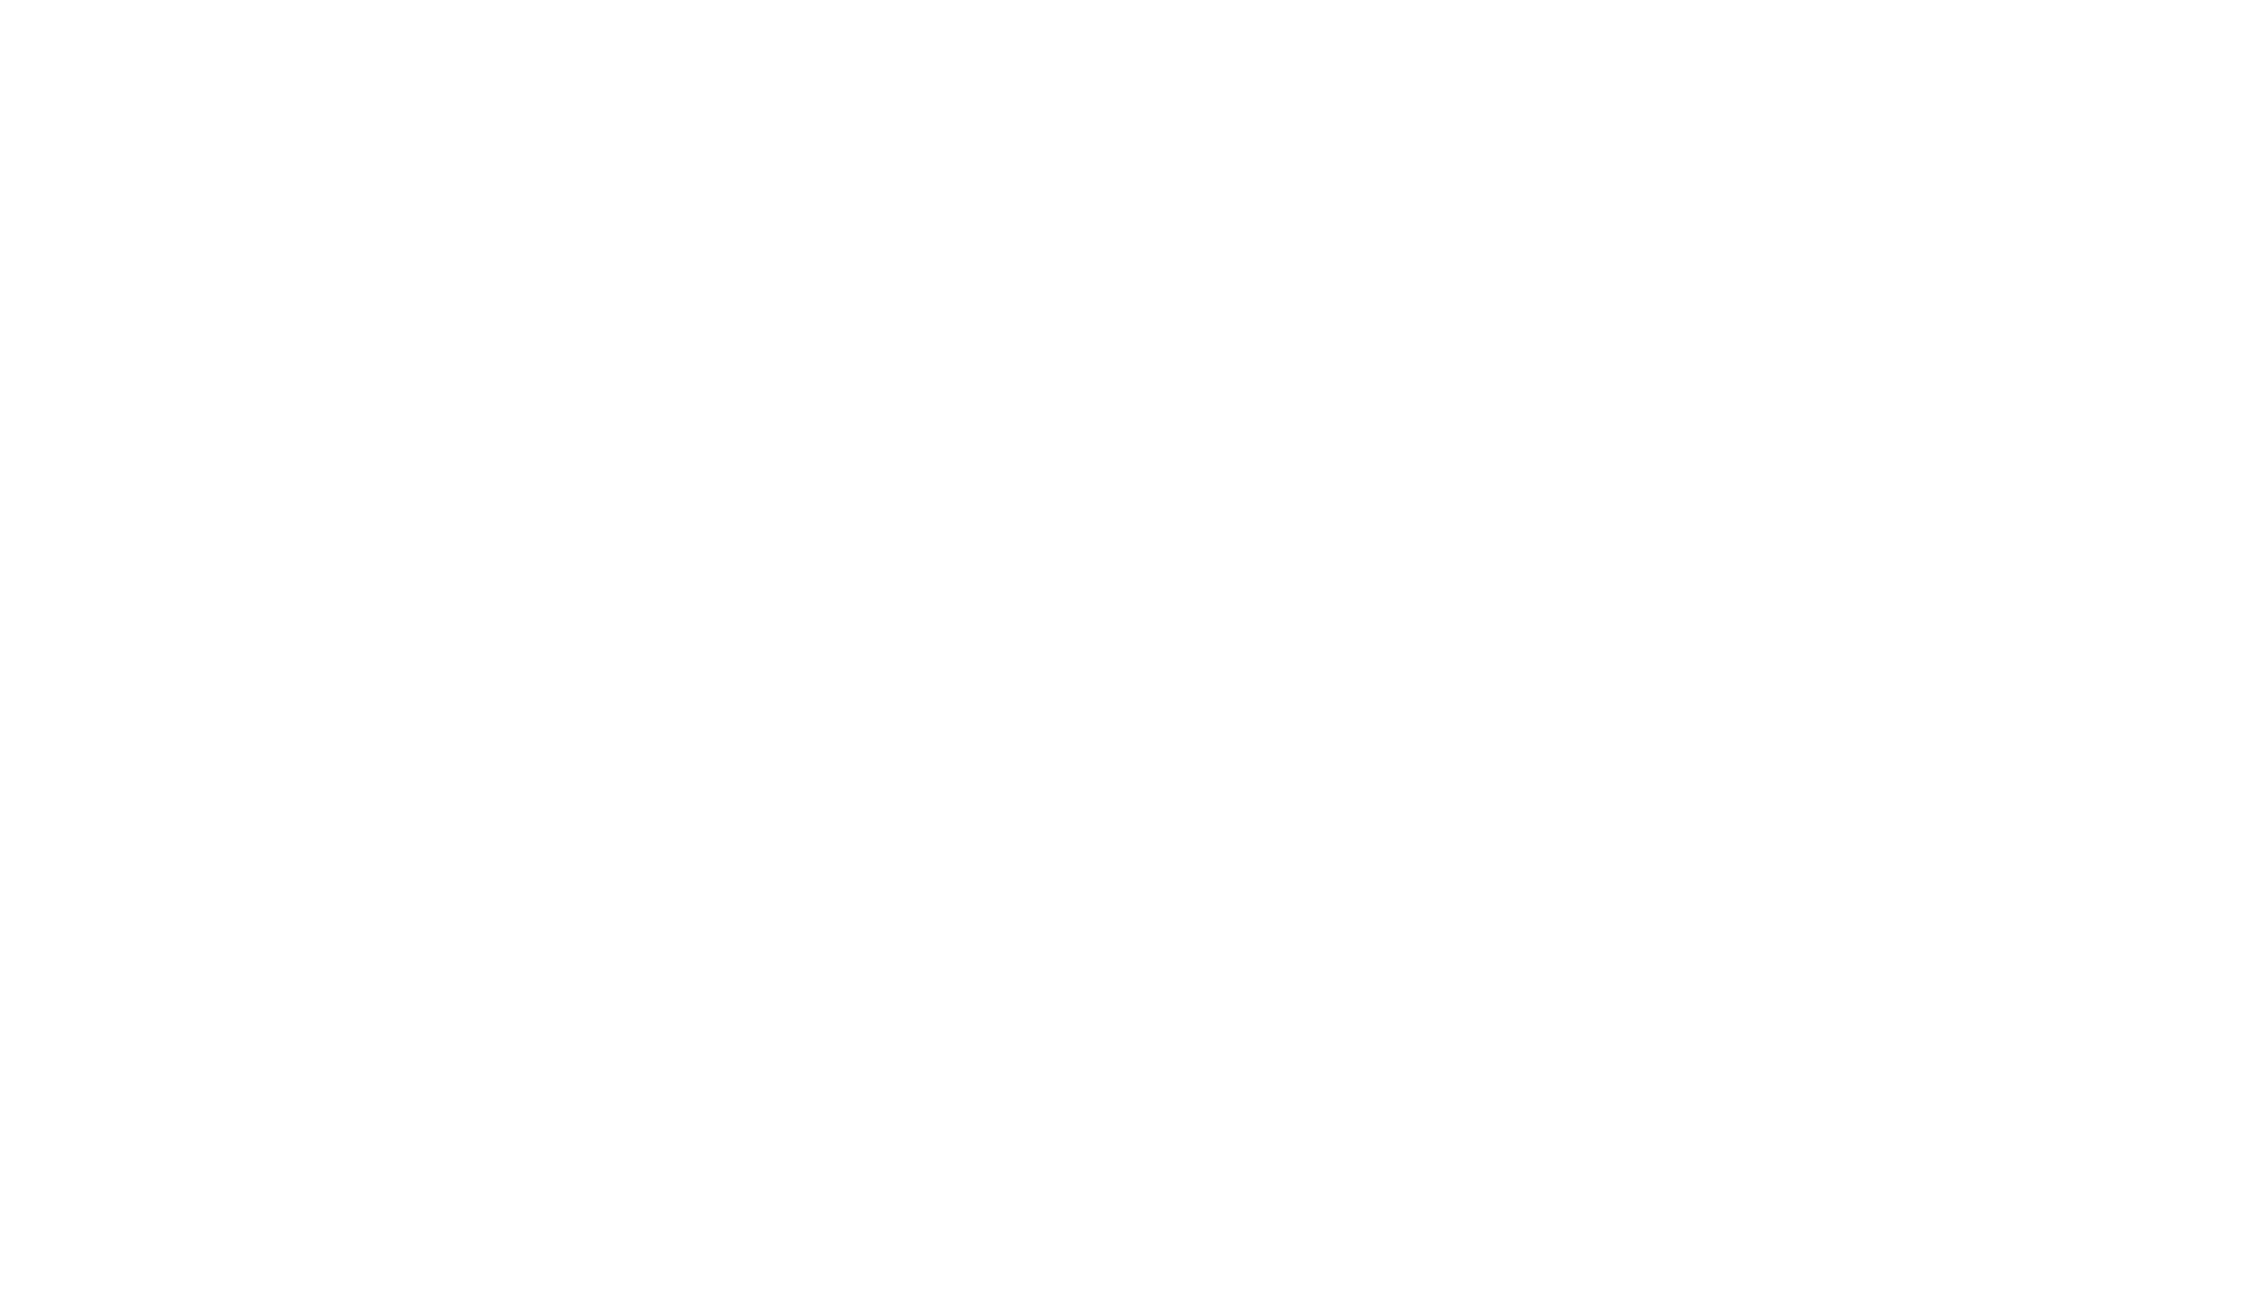 Construction Line Gold Member White Logo